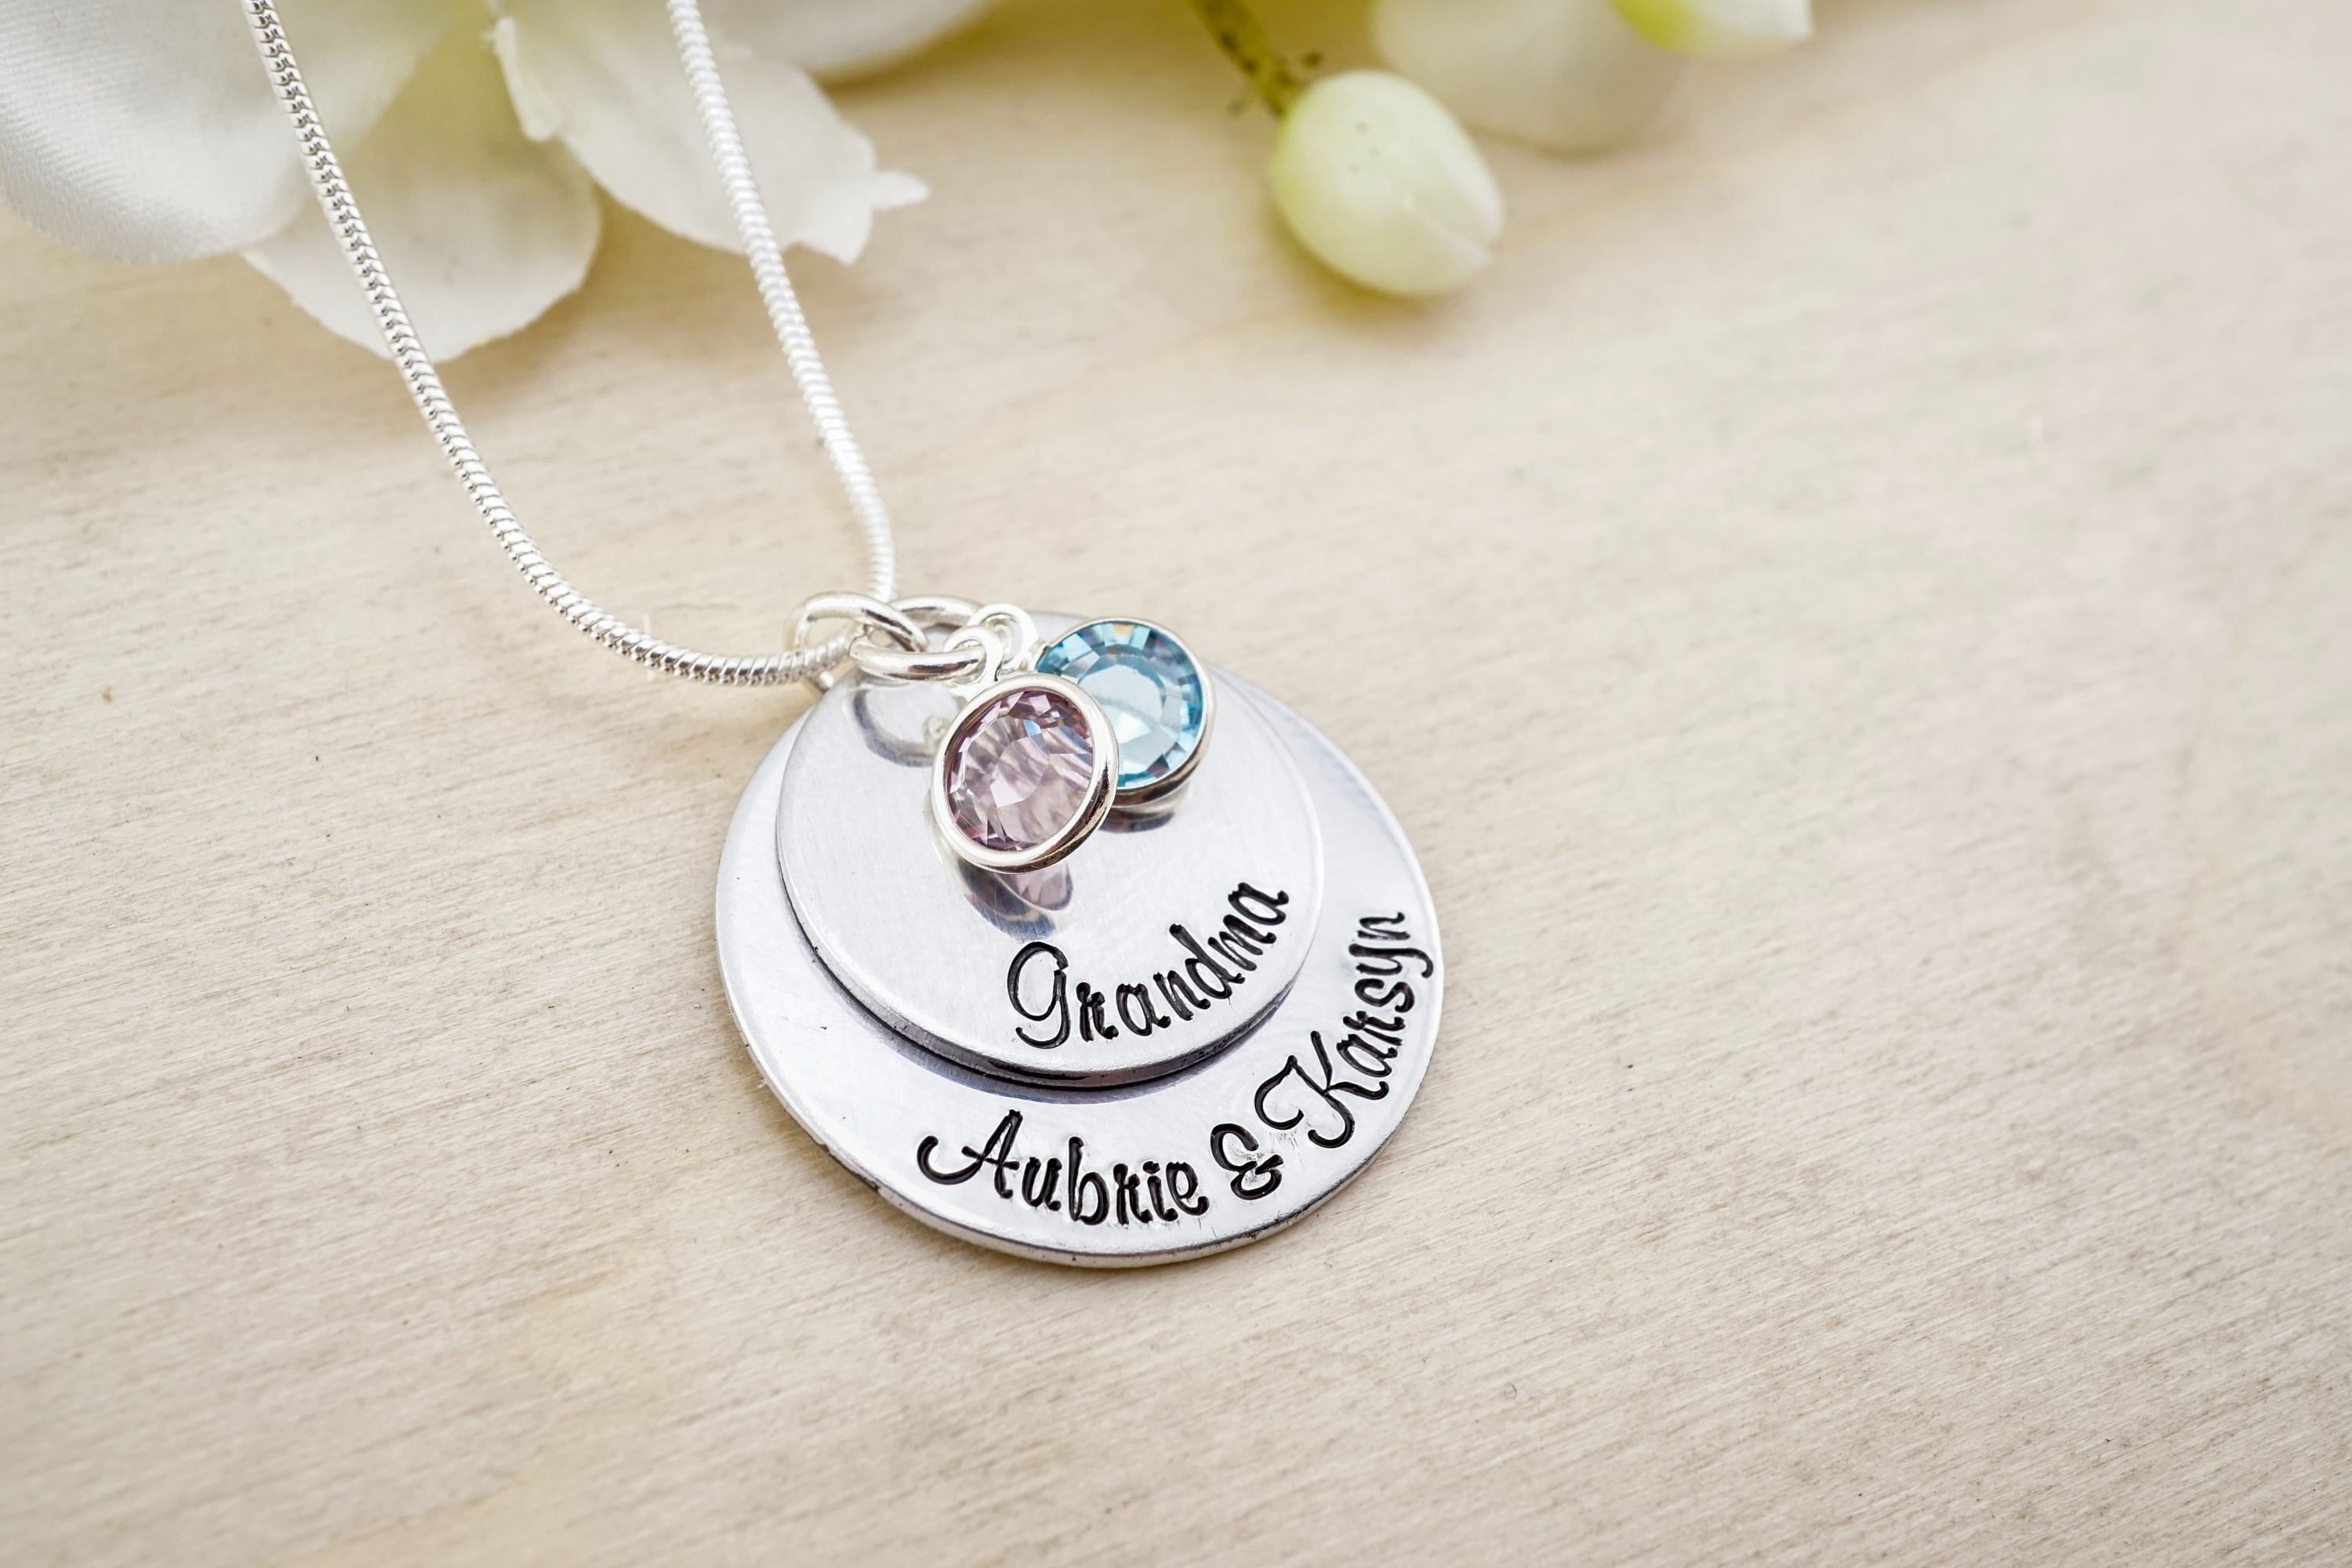 grandma grandkid pin for heirloom grandkids gift birthstone family tree necklace mom